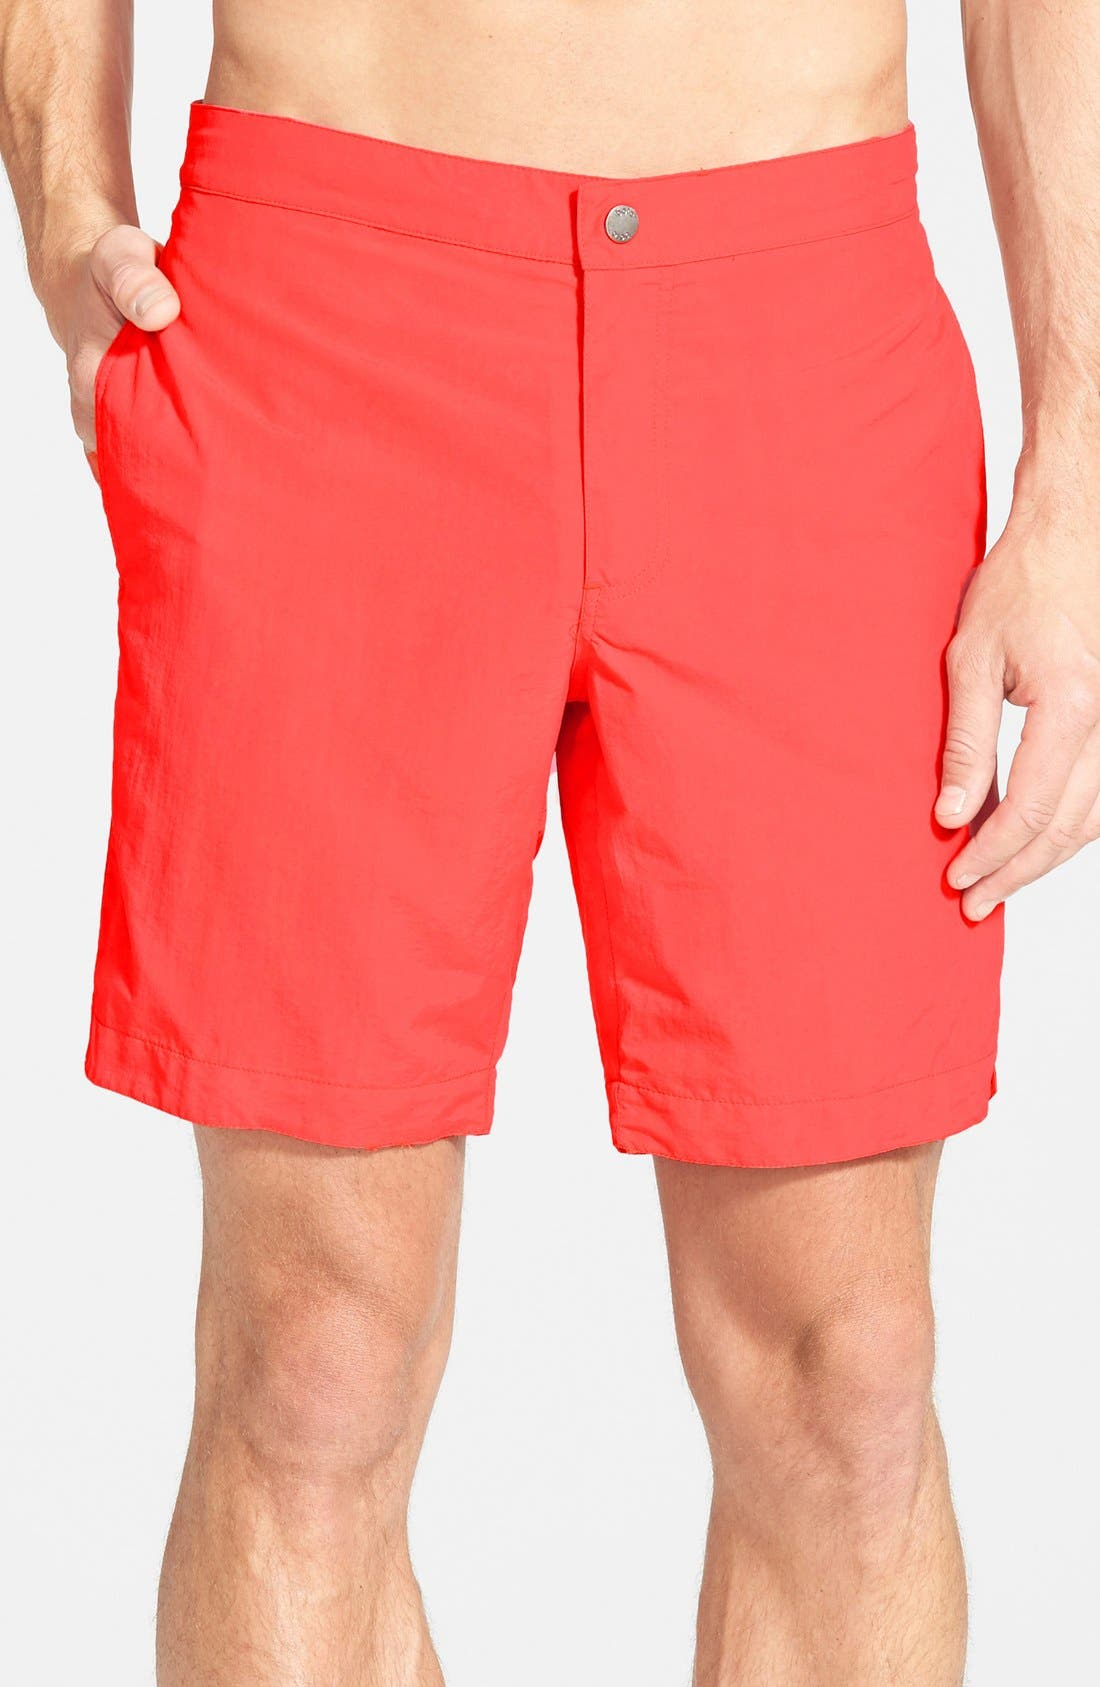 'Aruba - Island' Tailored Fit 8.5 Inch Board Shorts,                         Main,                         color, Island Coral Red